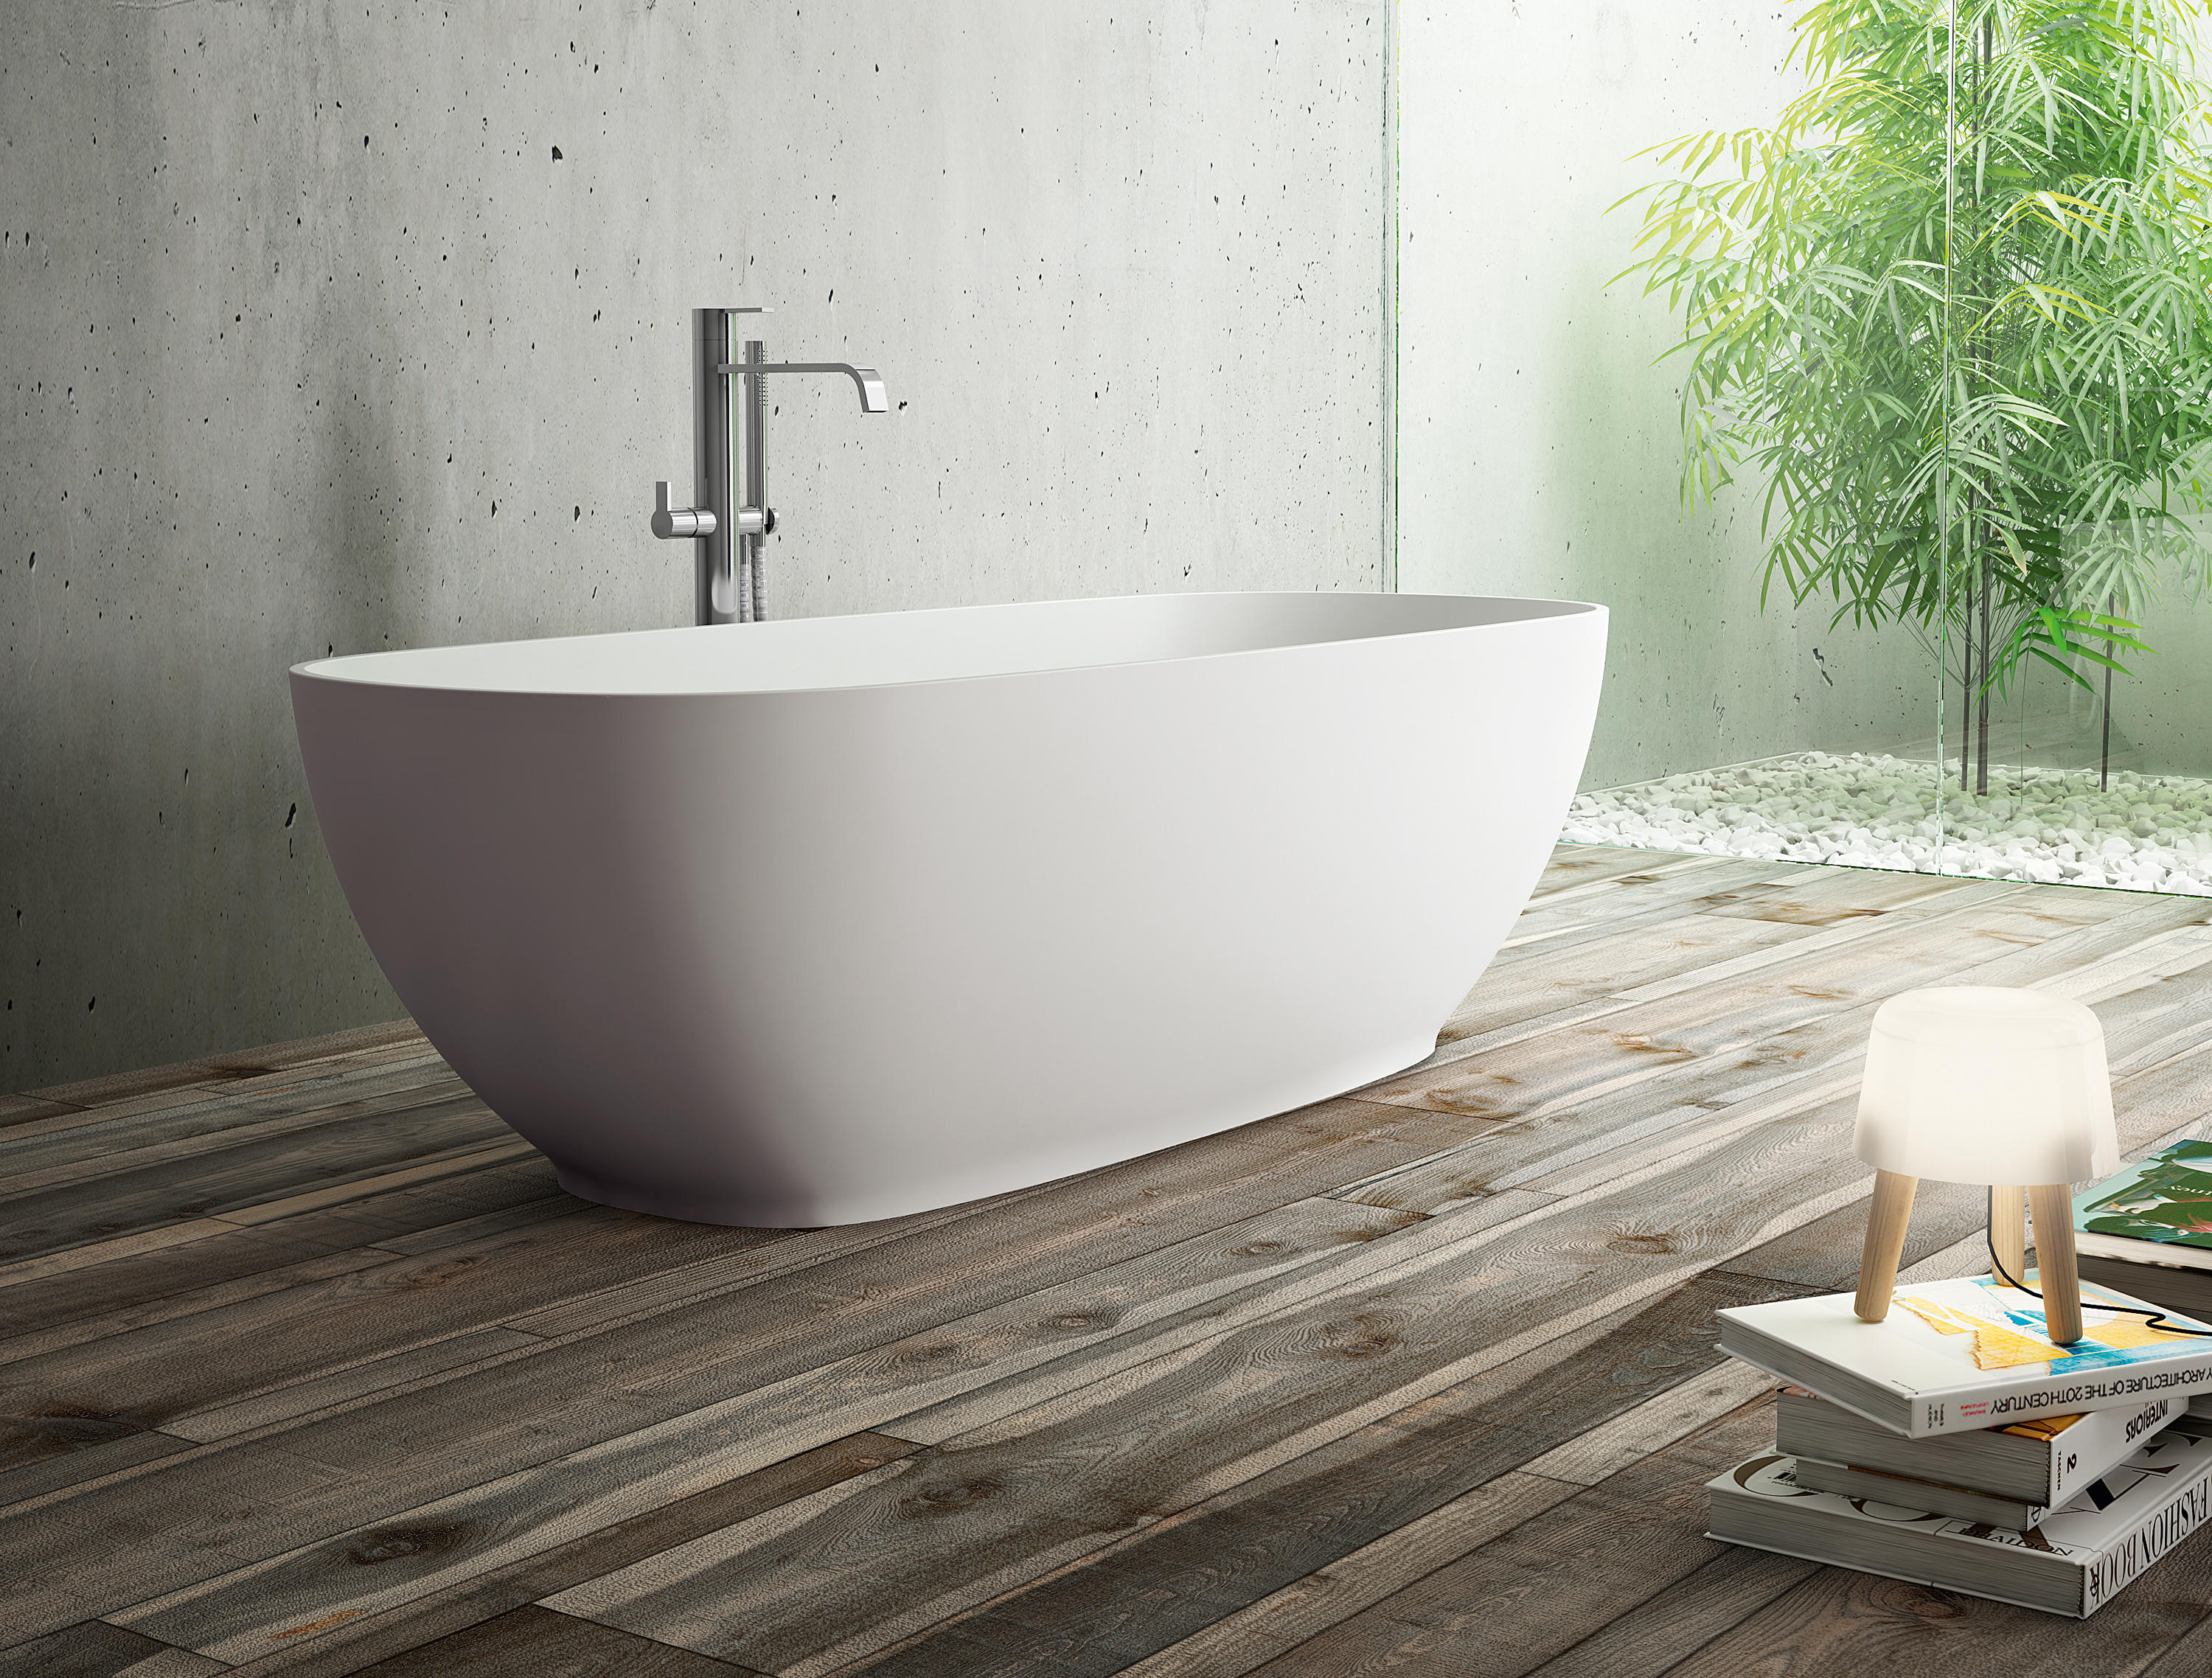 OVAL FREESTANDING Bathtubs From Idea Group